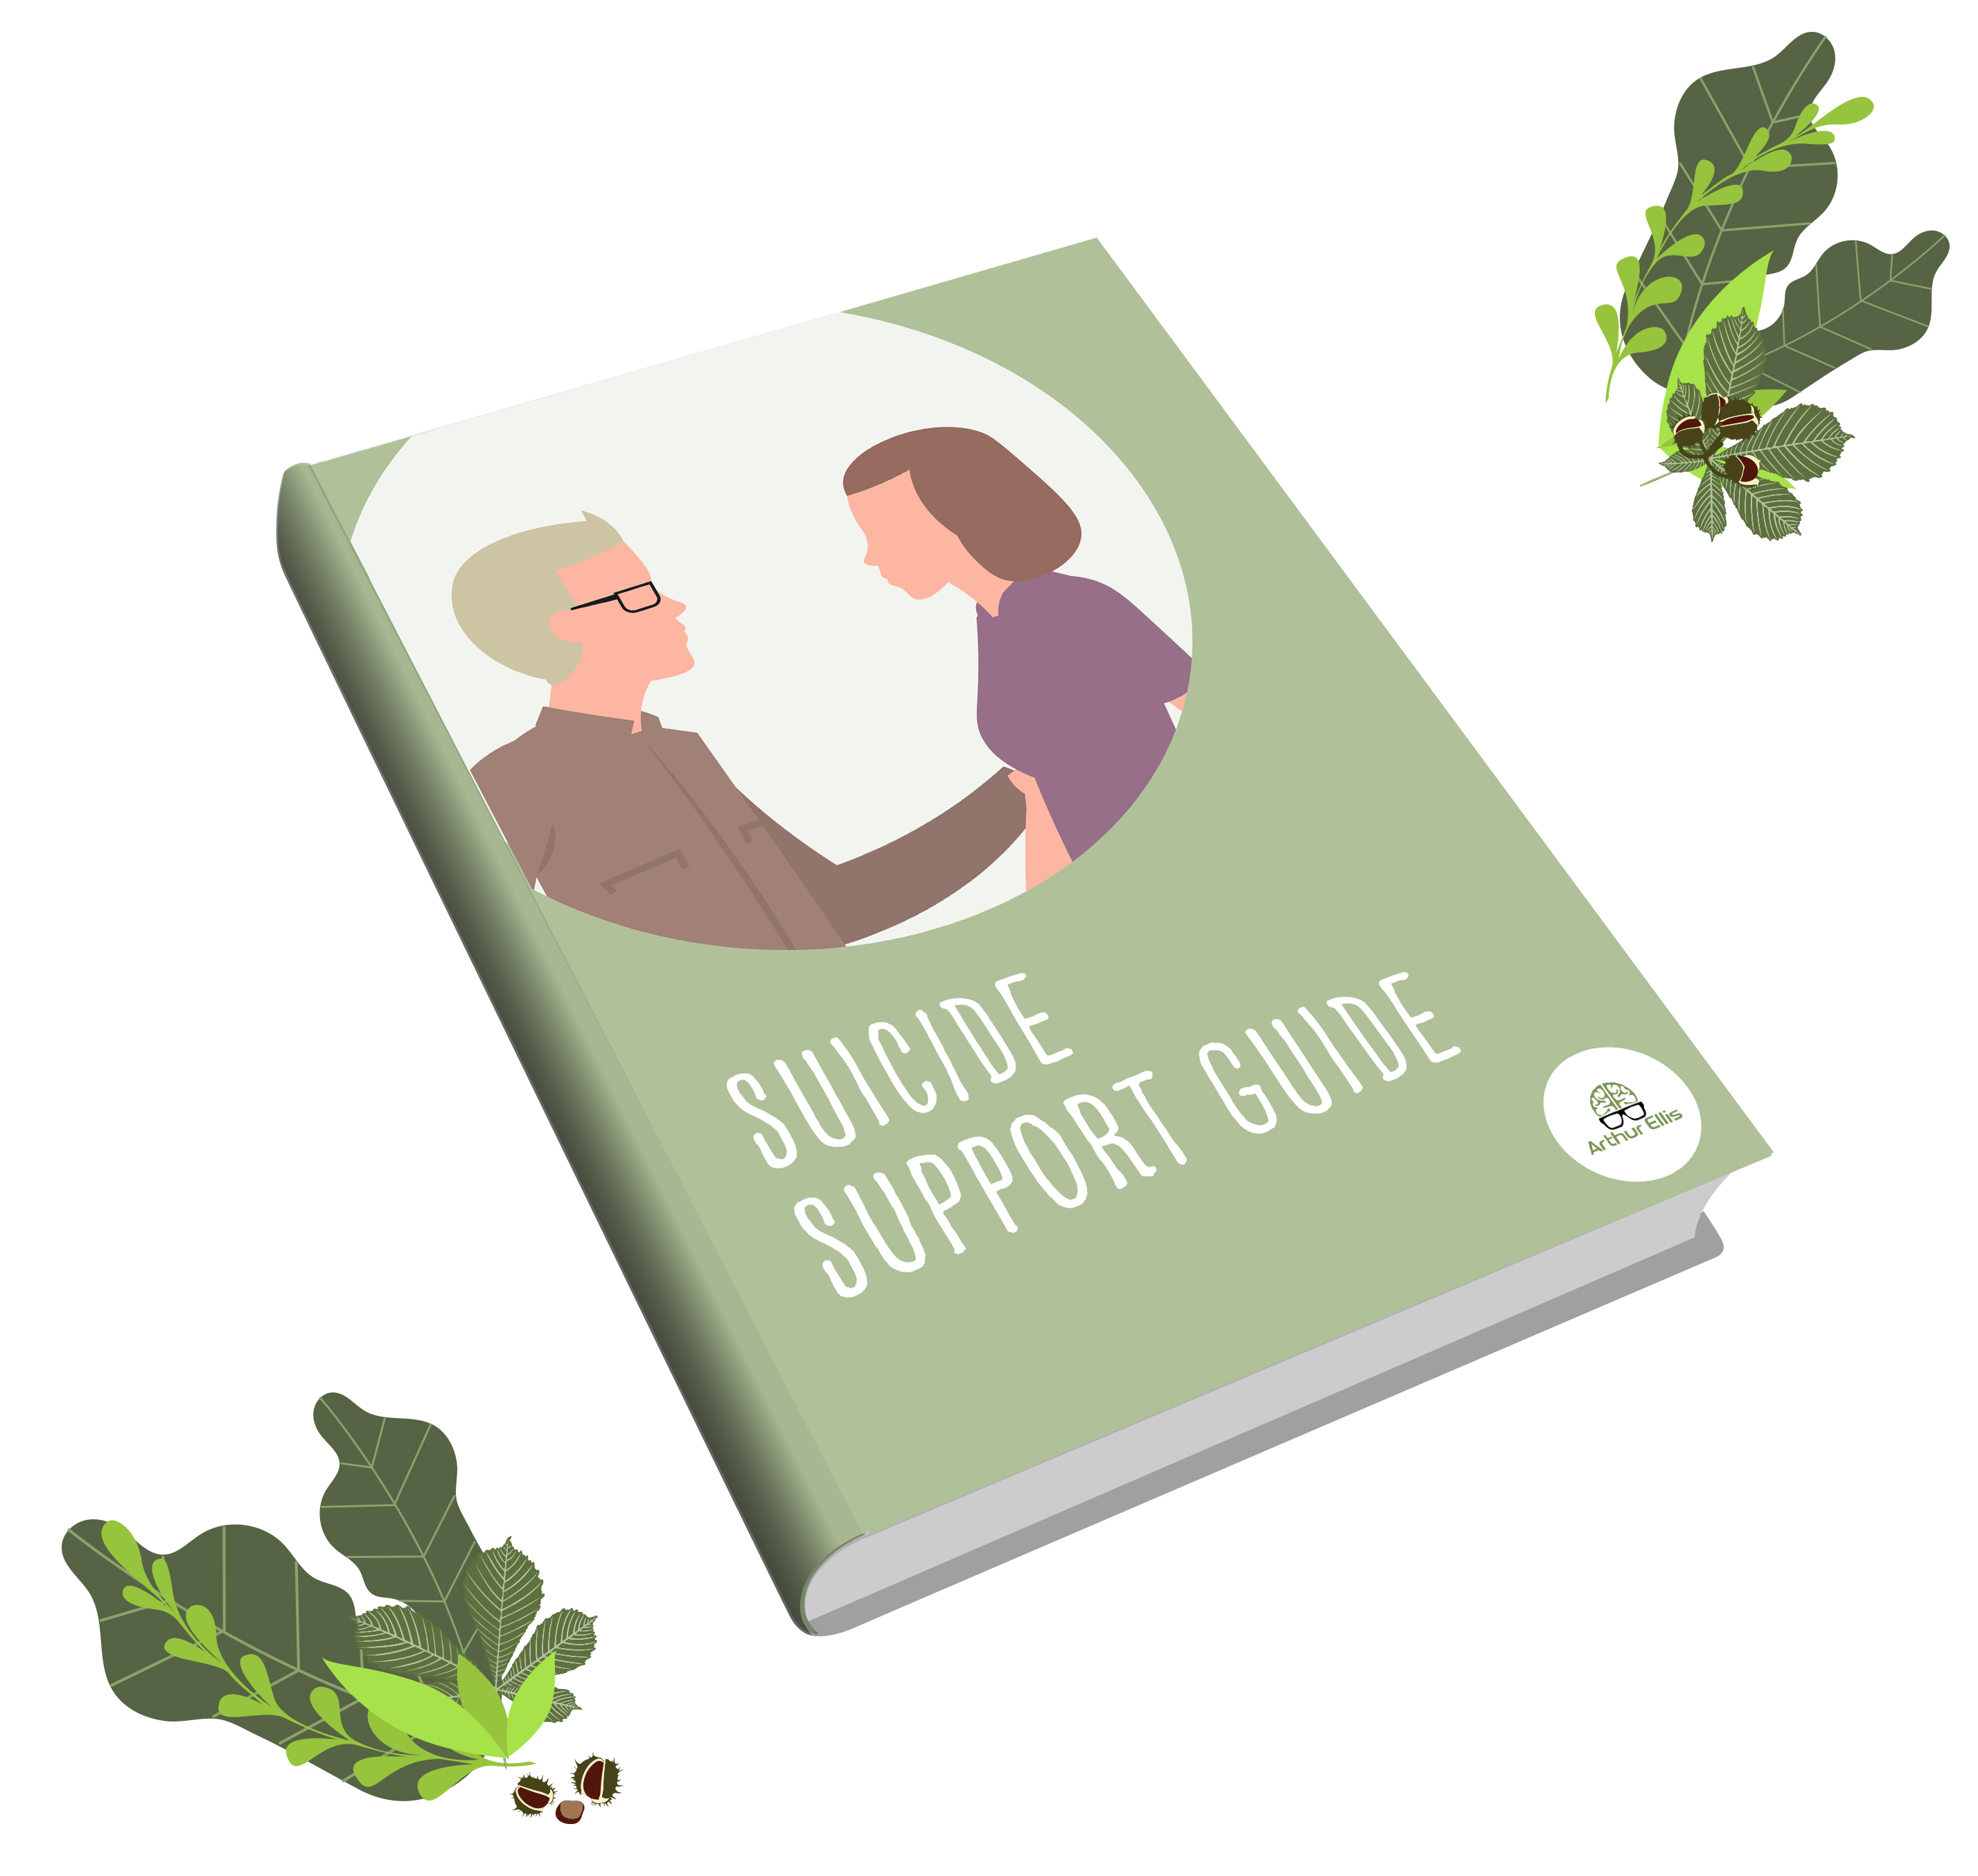 Suicide Support Guide